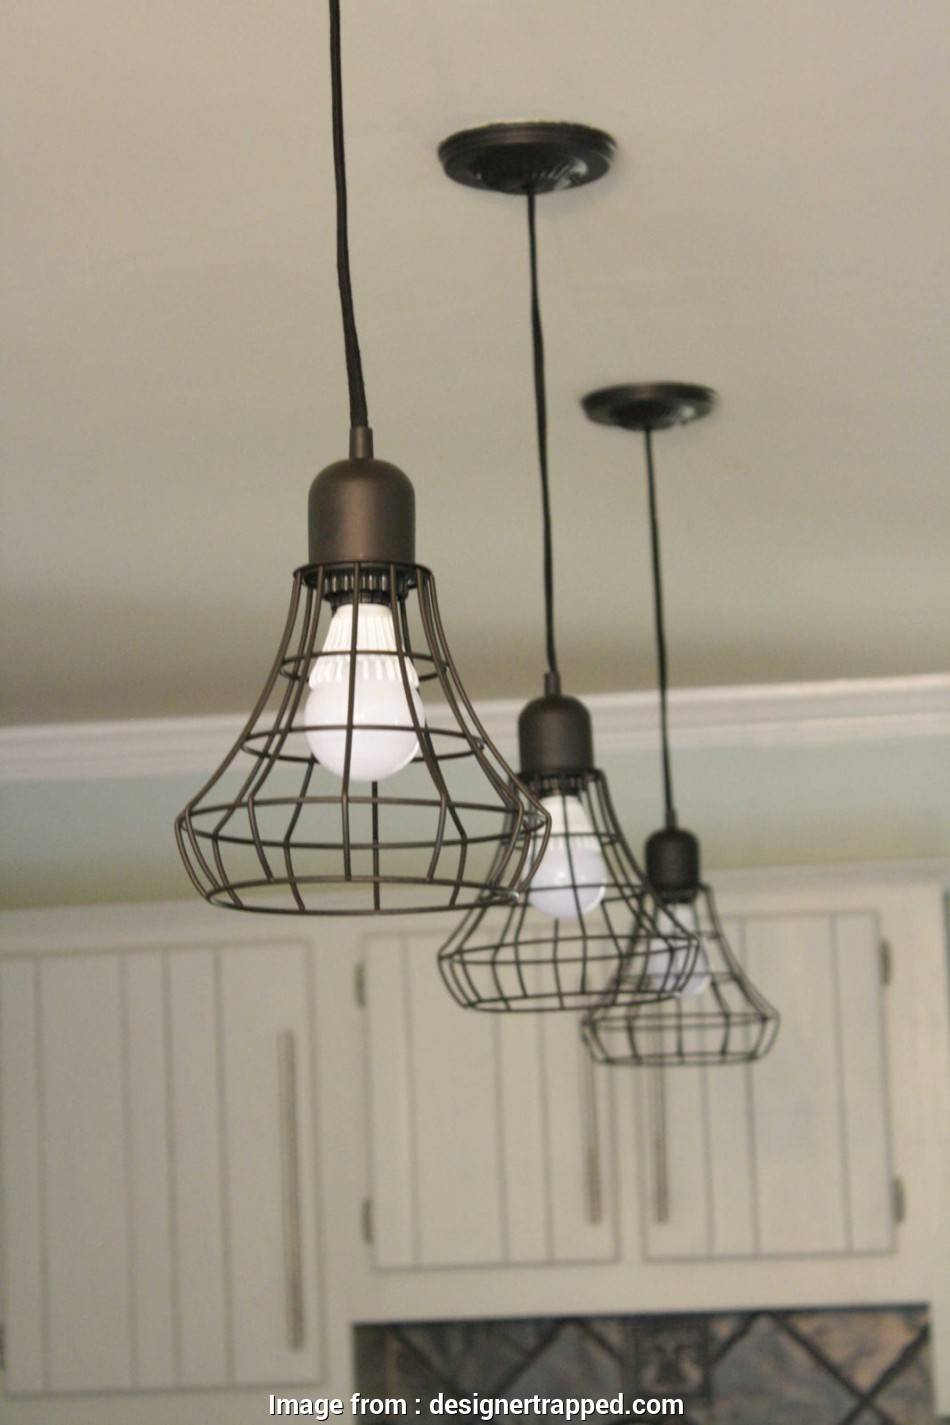 target wire pendant light WOW! Budget kitchen remodel by Designer Trapped in a Lawyer's Body. Totally transformed with 18 Professional Target Wire Pendant Light Ideas